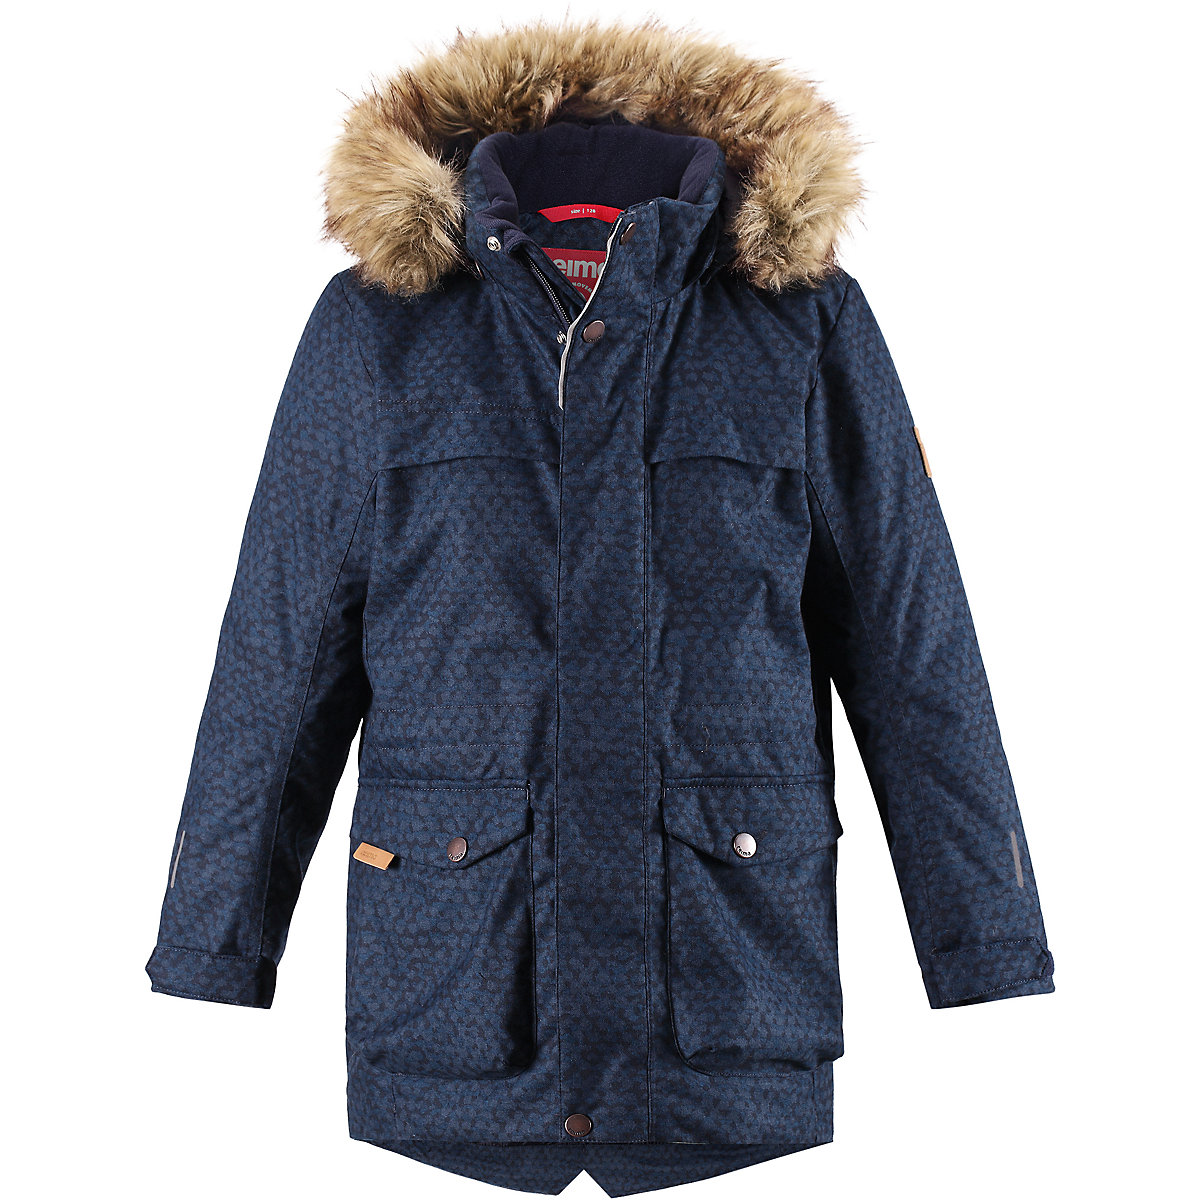 REIMA Jackets 8665451 for boys polyester winter  fur clothes boy reima jackets 8688821 for boys polyester winter fur clothes boy